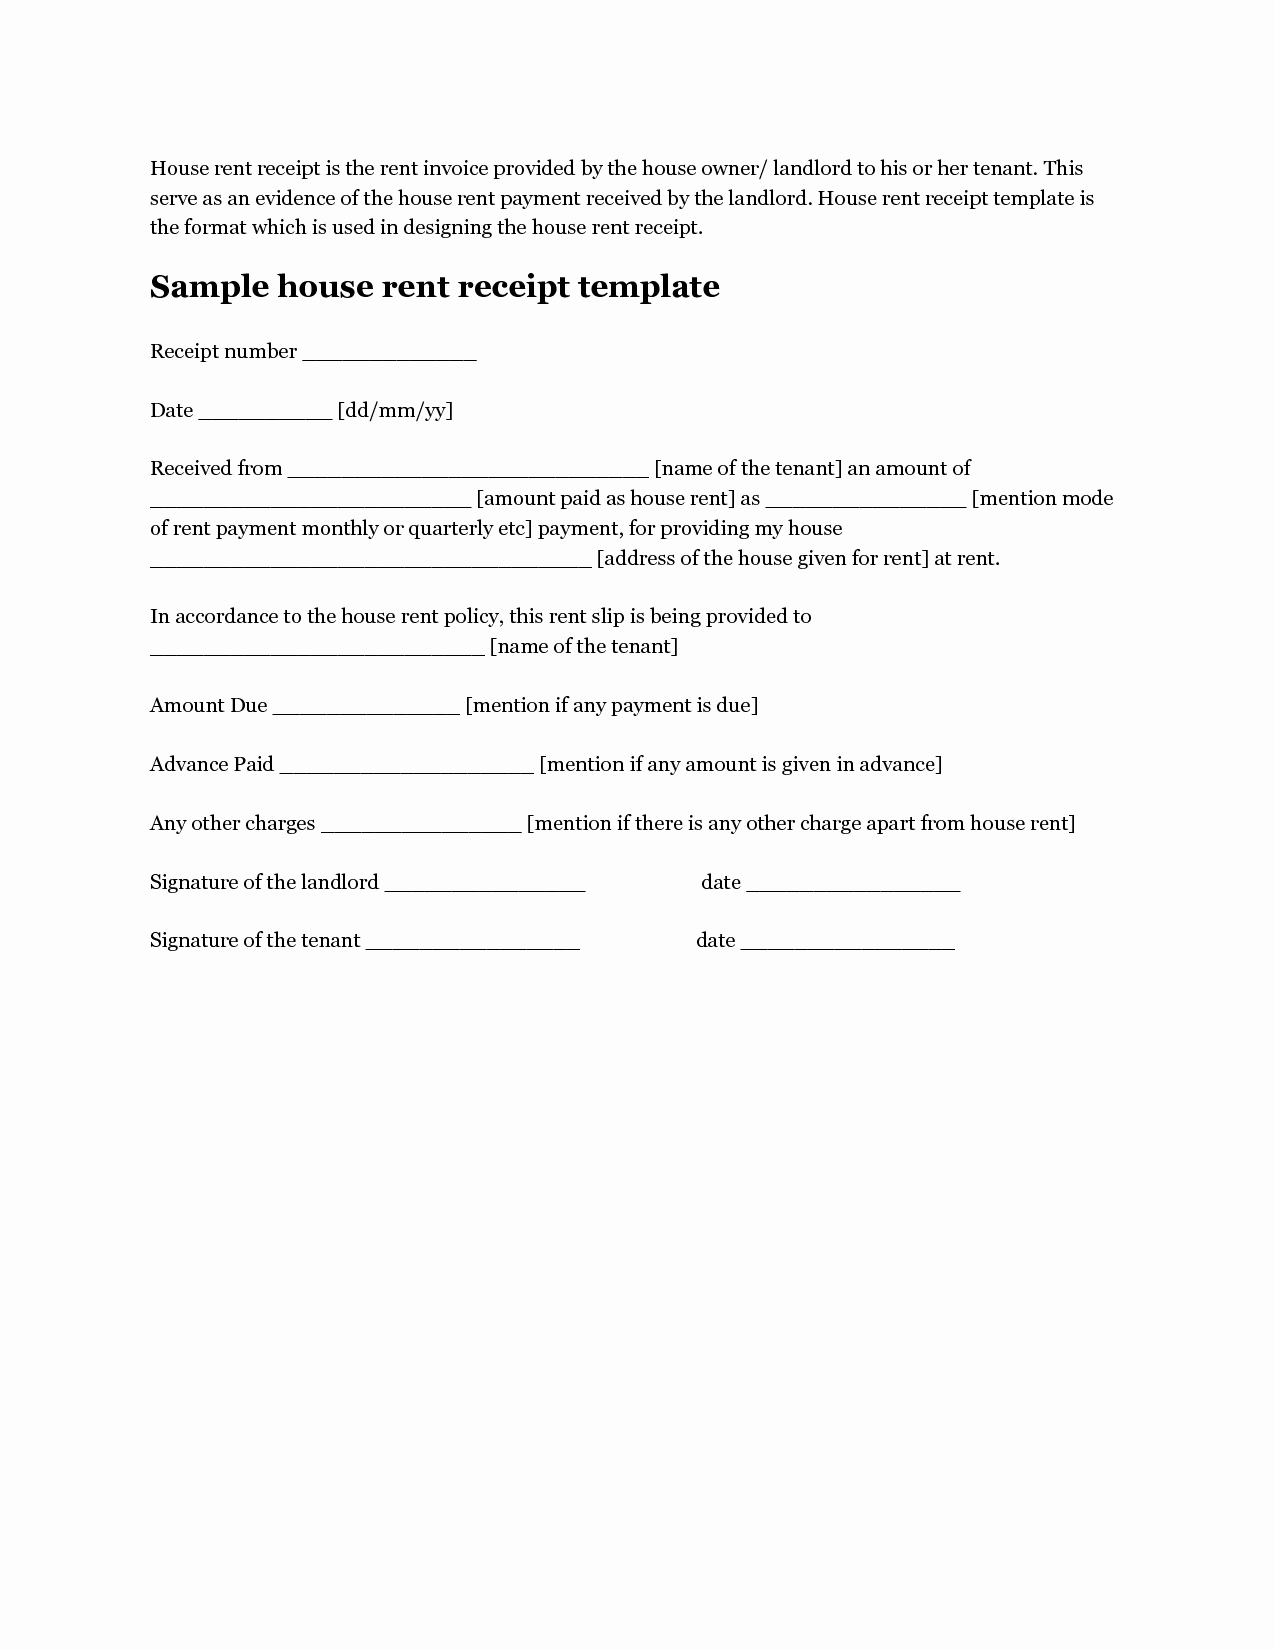 Rent Money Future Download Awesome Free House Rental Invoice